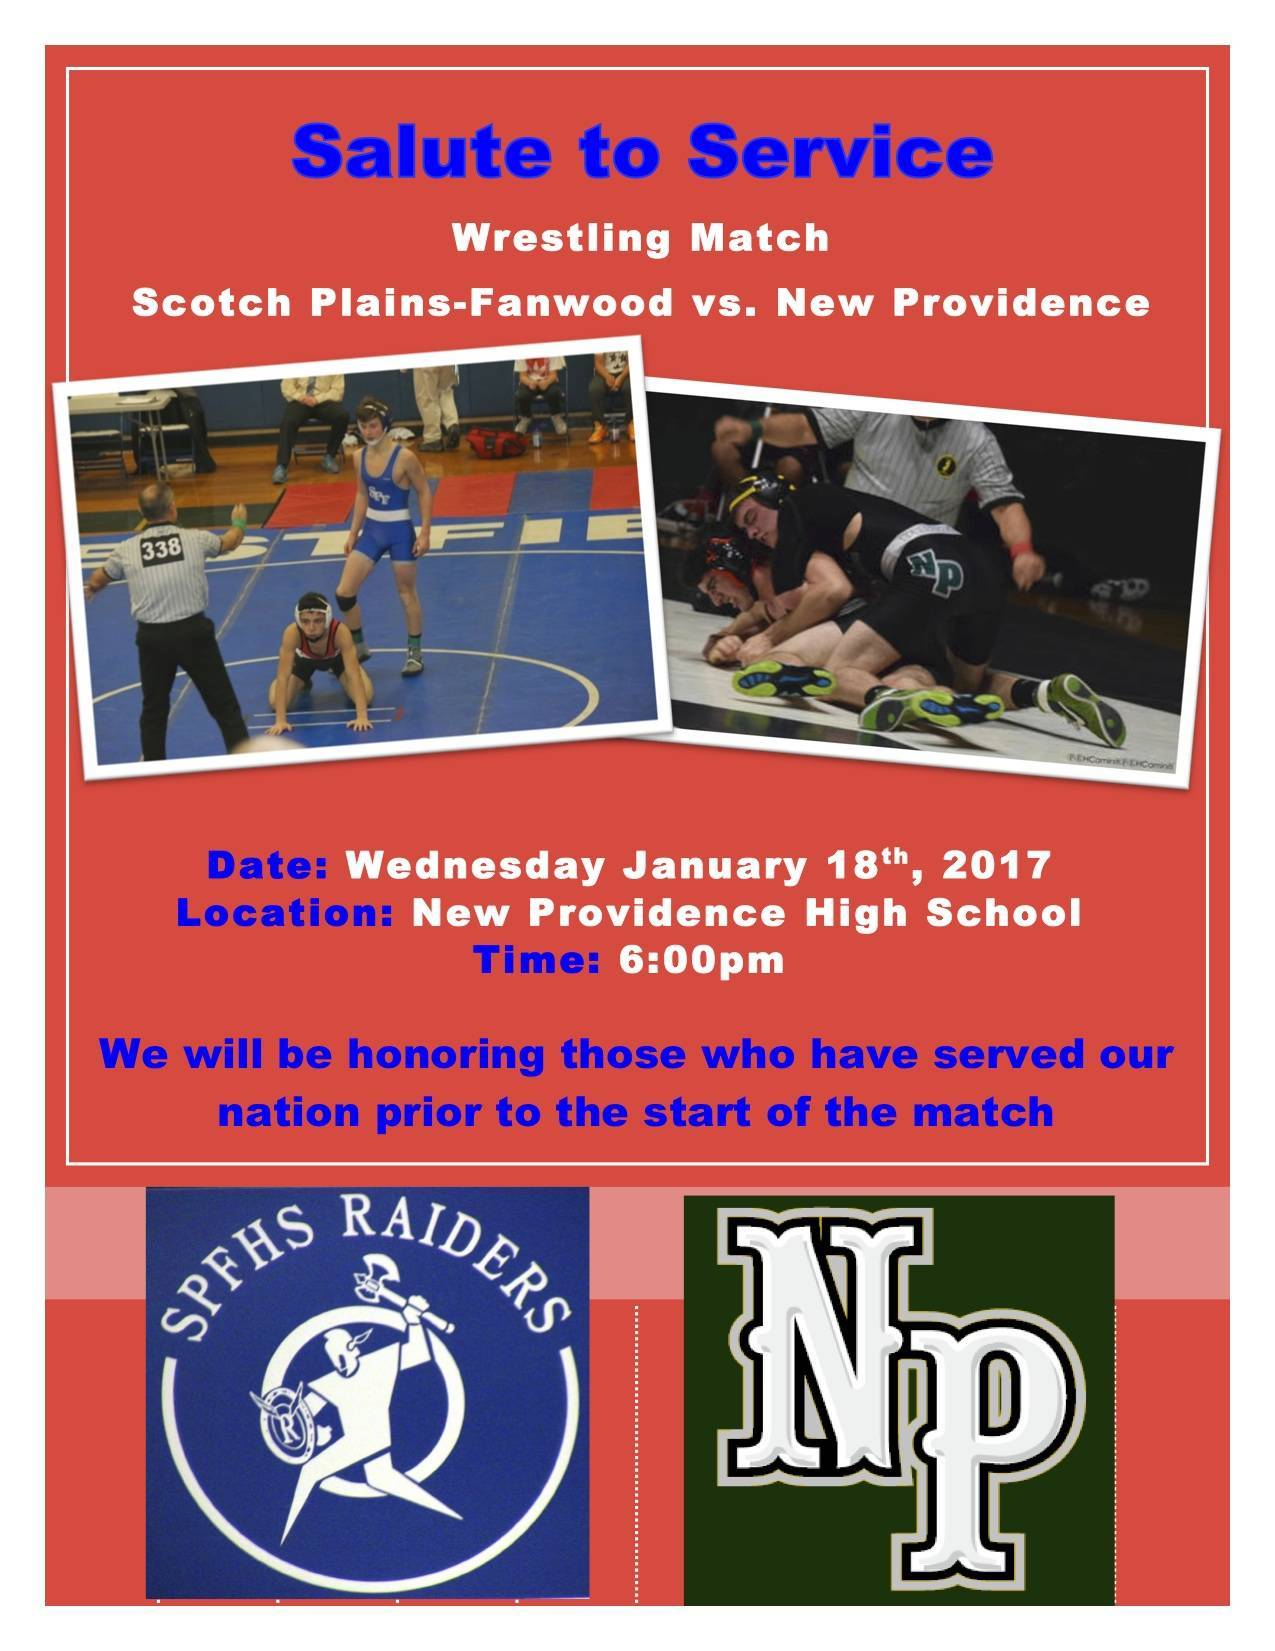 734856ae3ea668ca14be_Salute_to_Service_Wrestling_Match__2017.jpg